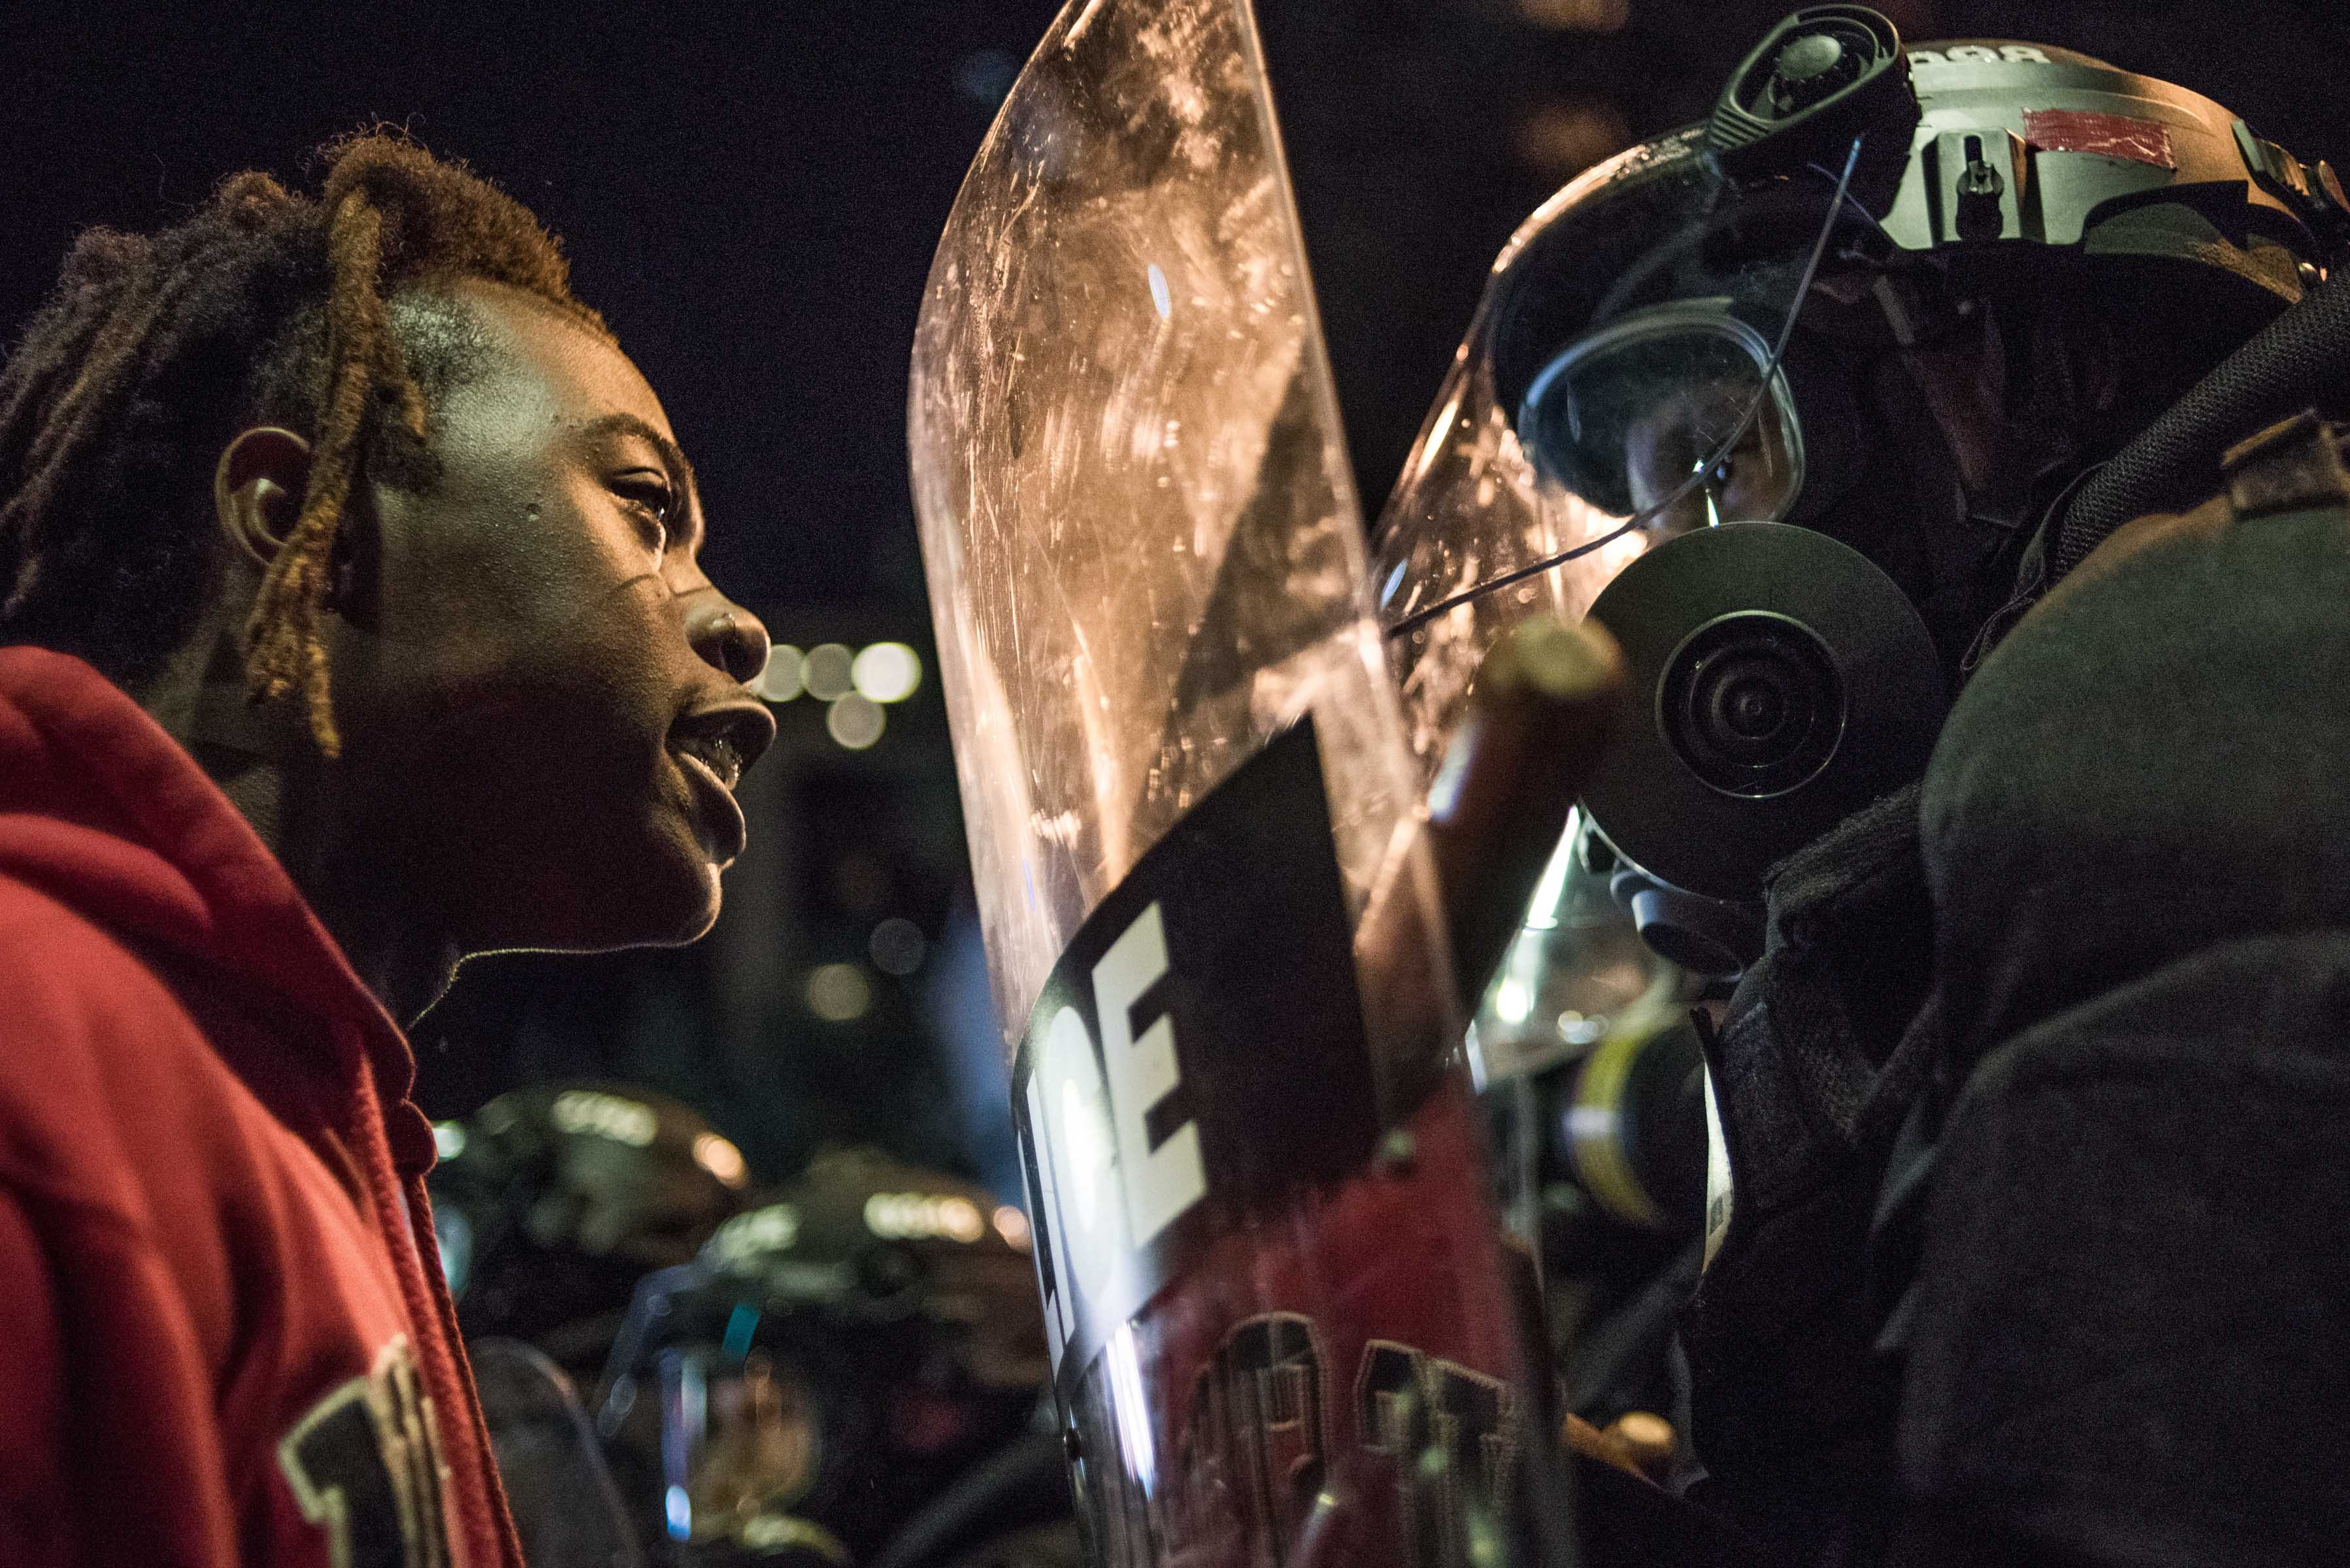 21 September 2016: A demonstrator stares down law enforcement during protests in Charlotte, North Carolina, which began in response to the fatal shooting of 43-year-old Keith Lamont Scott. (Photograph by Sean Rayford/Getty Images)